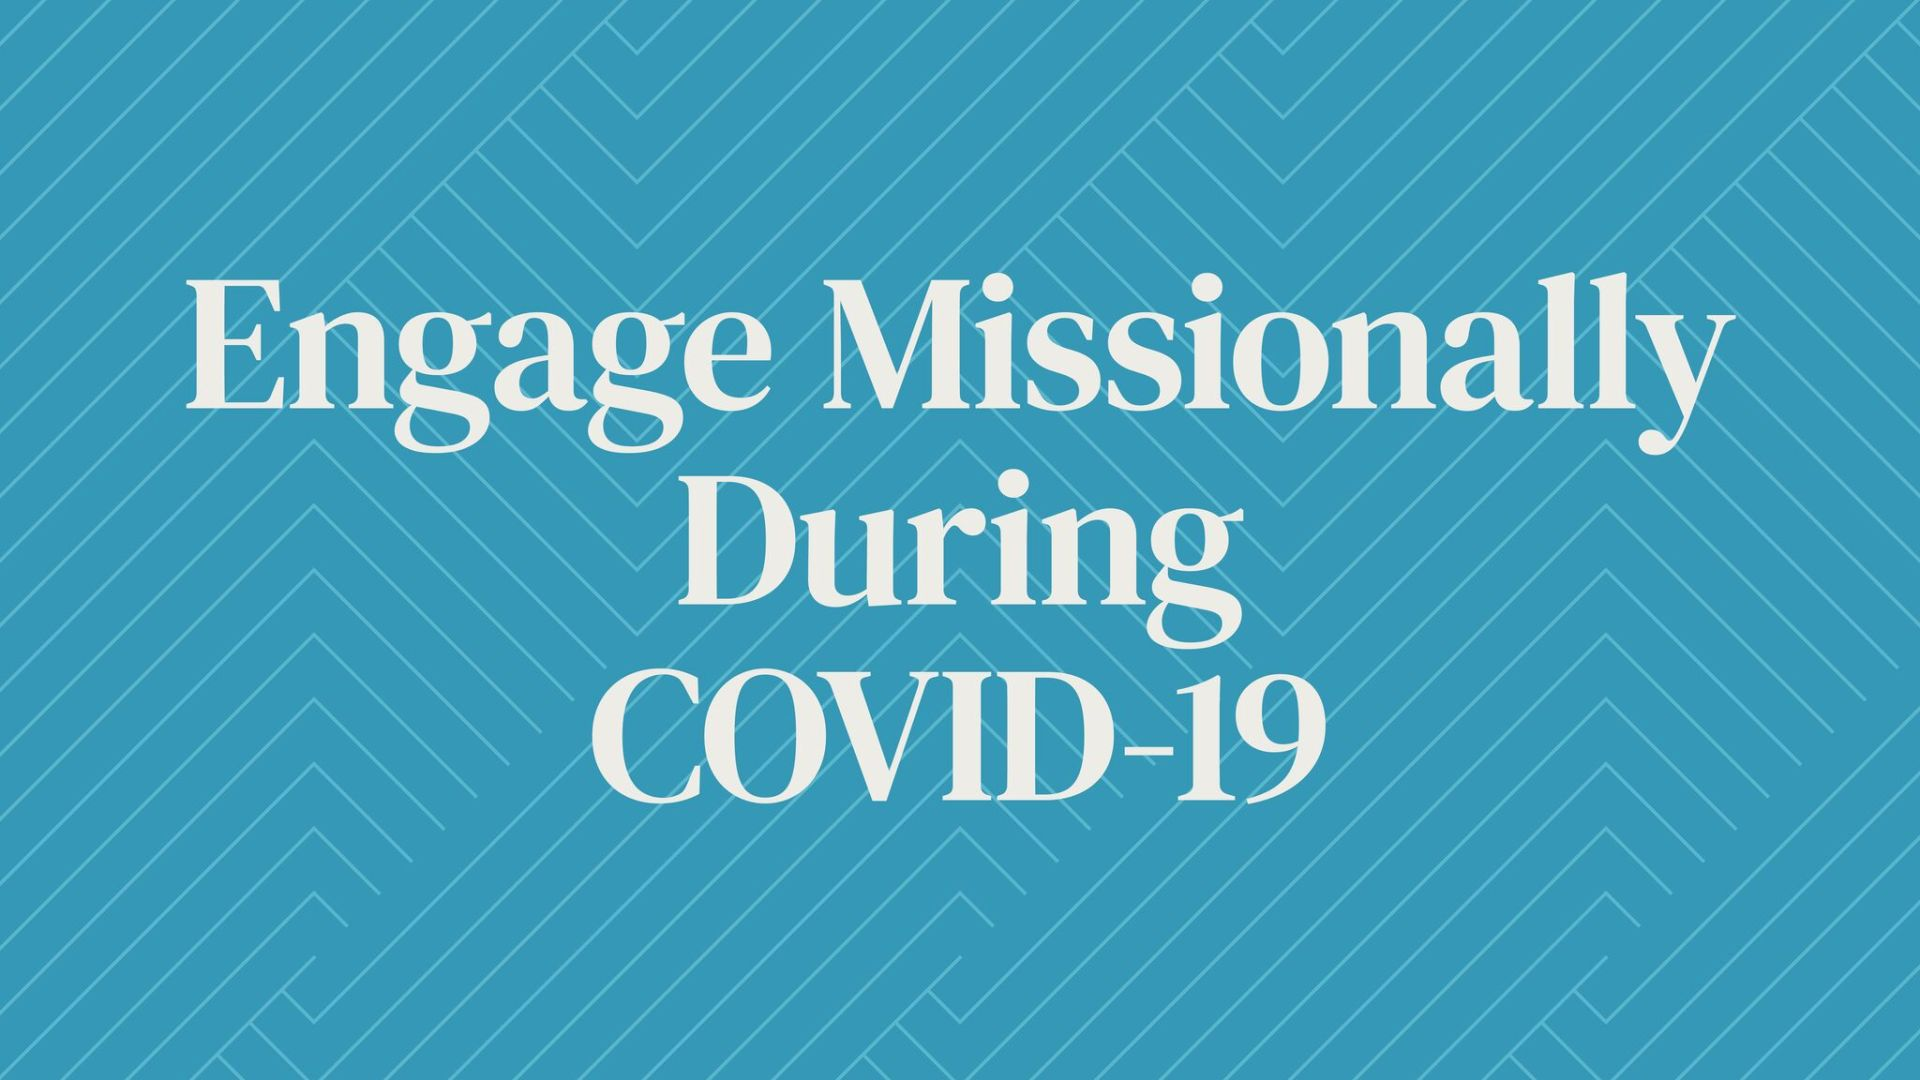 Engage Missionally during COVID-19 Hero Image